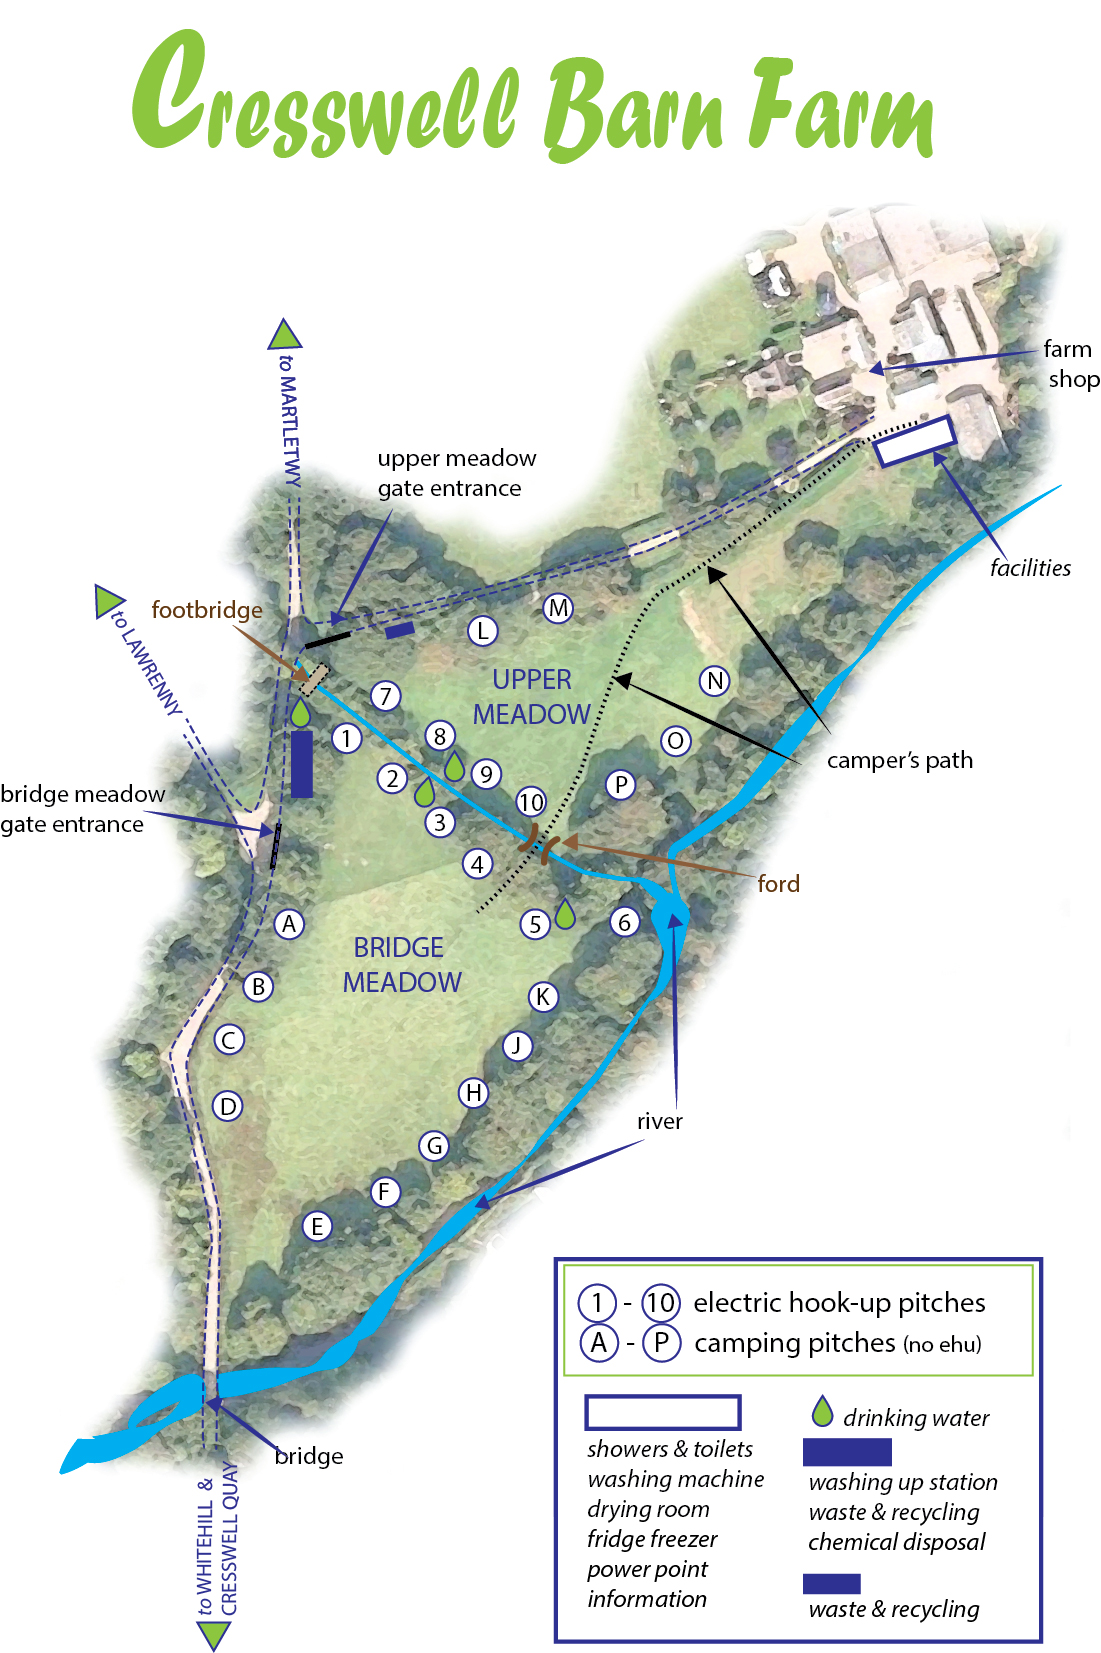 Cresswell Barn Farm Campsite map